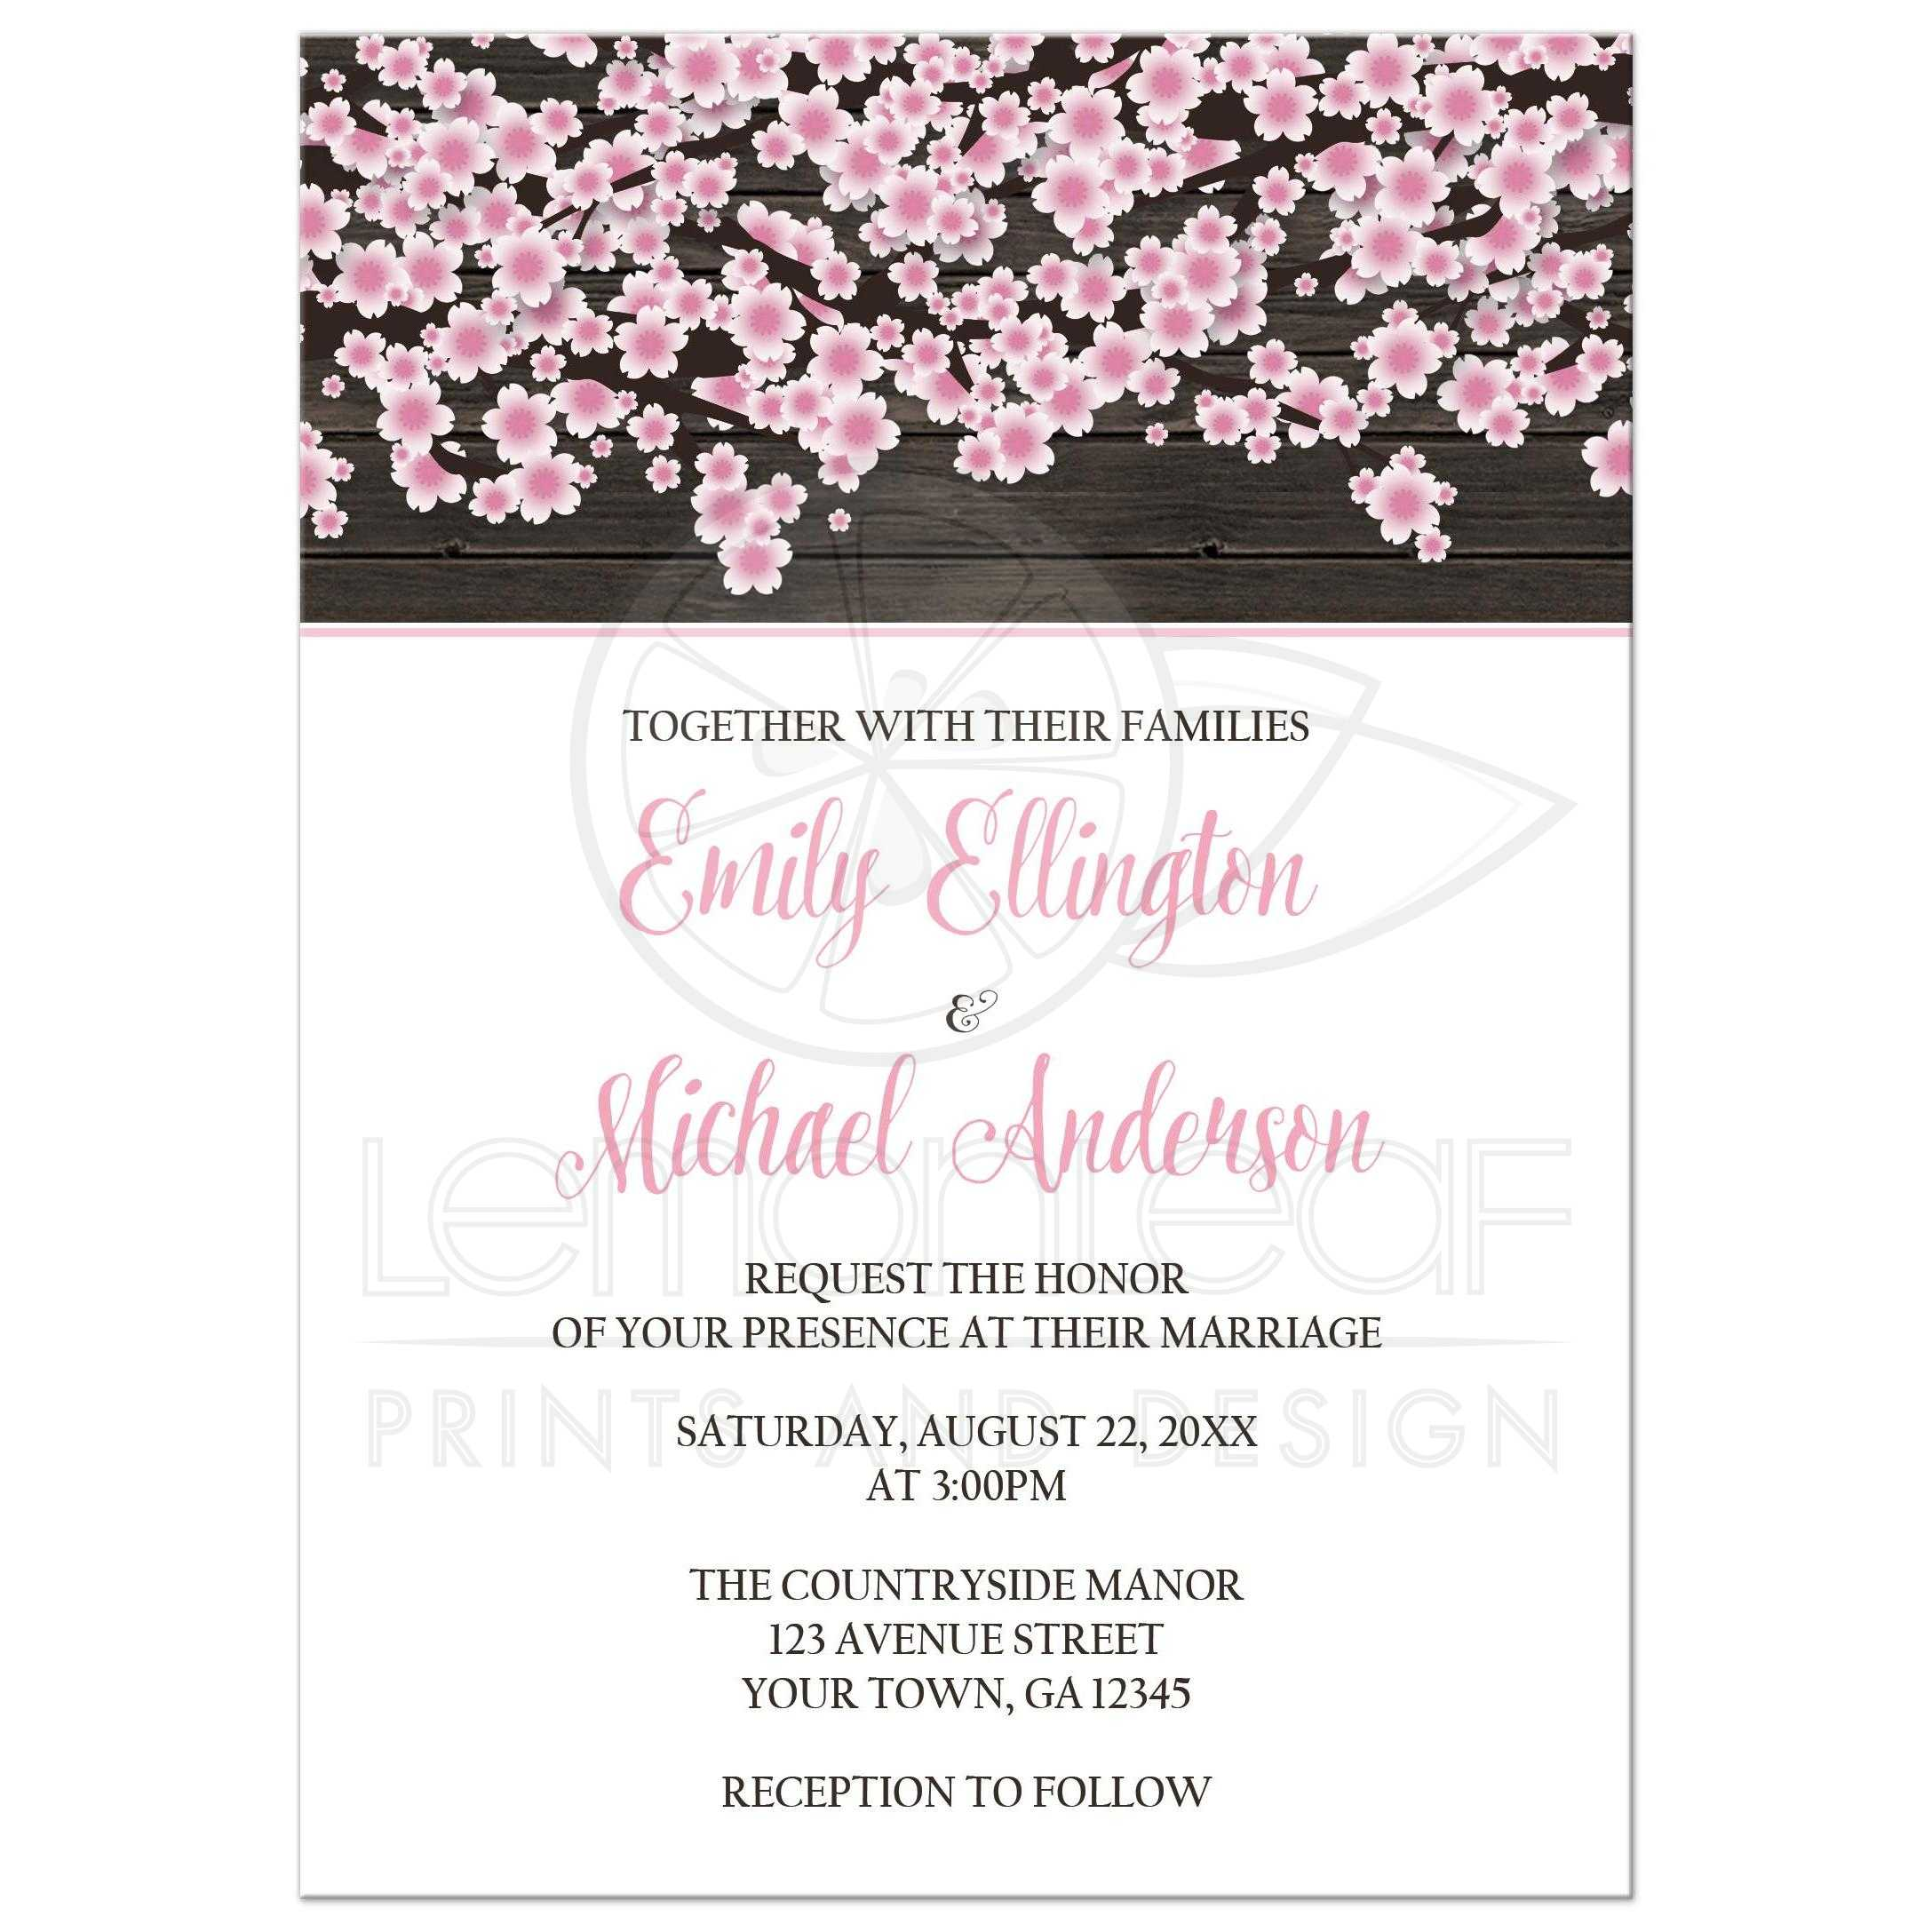 Invitations - Cherry Blossom Rustic Wood White